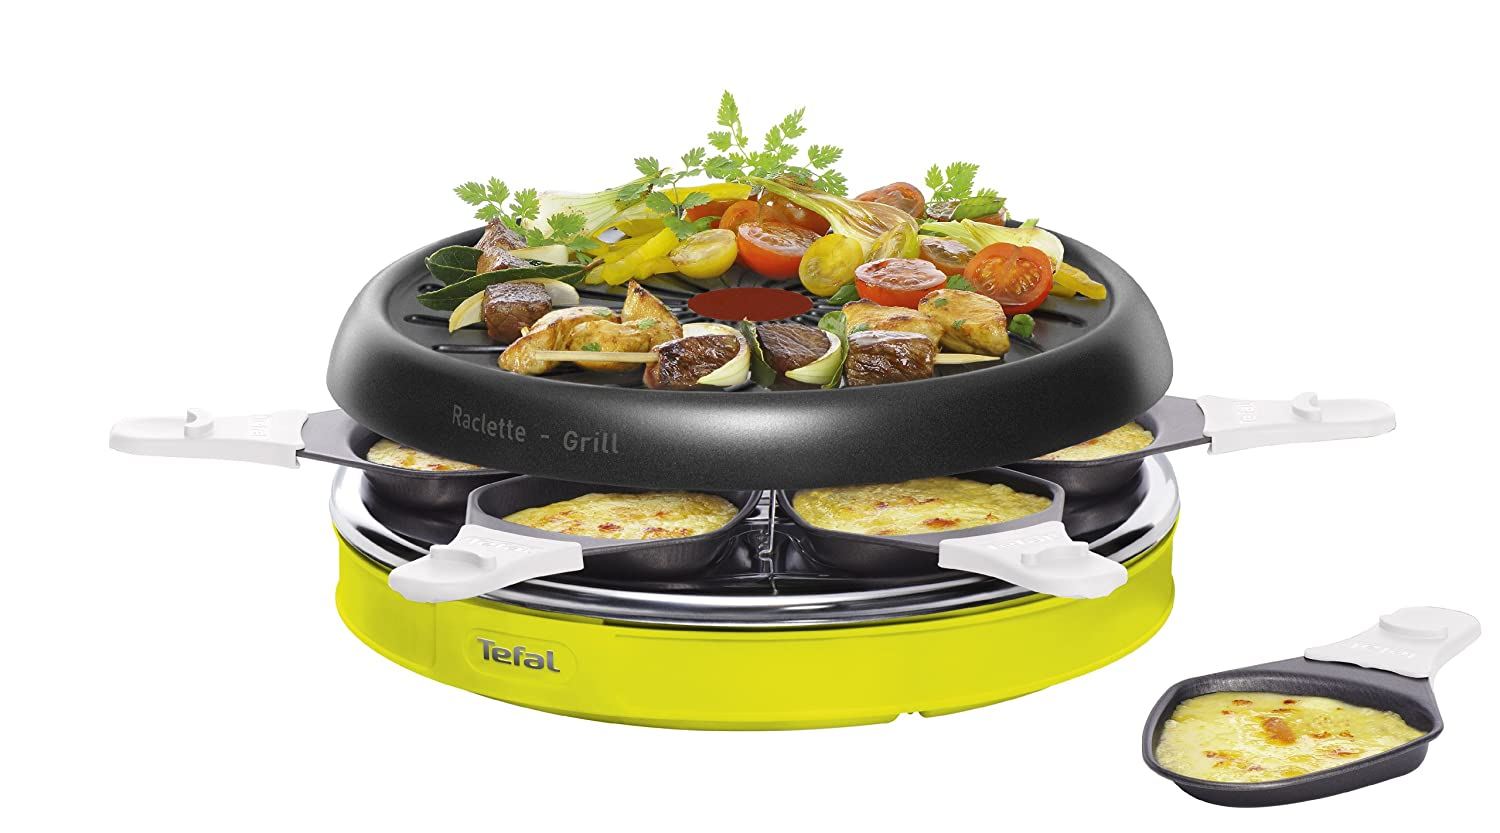 Lime Green Dishwasher-Safe Grill Plate Six Pans with Non-Stick Coating Easy to Clean Tefal Colormania x6 Raclette RE128012